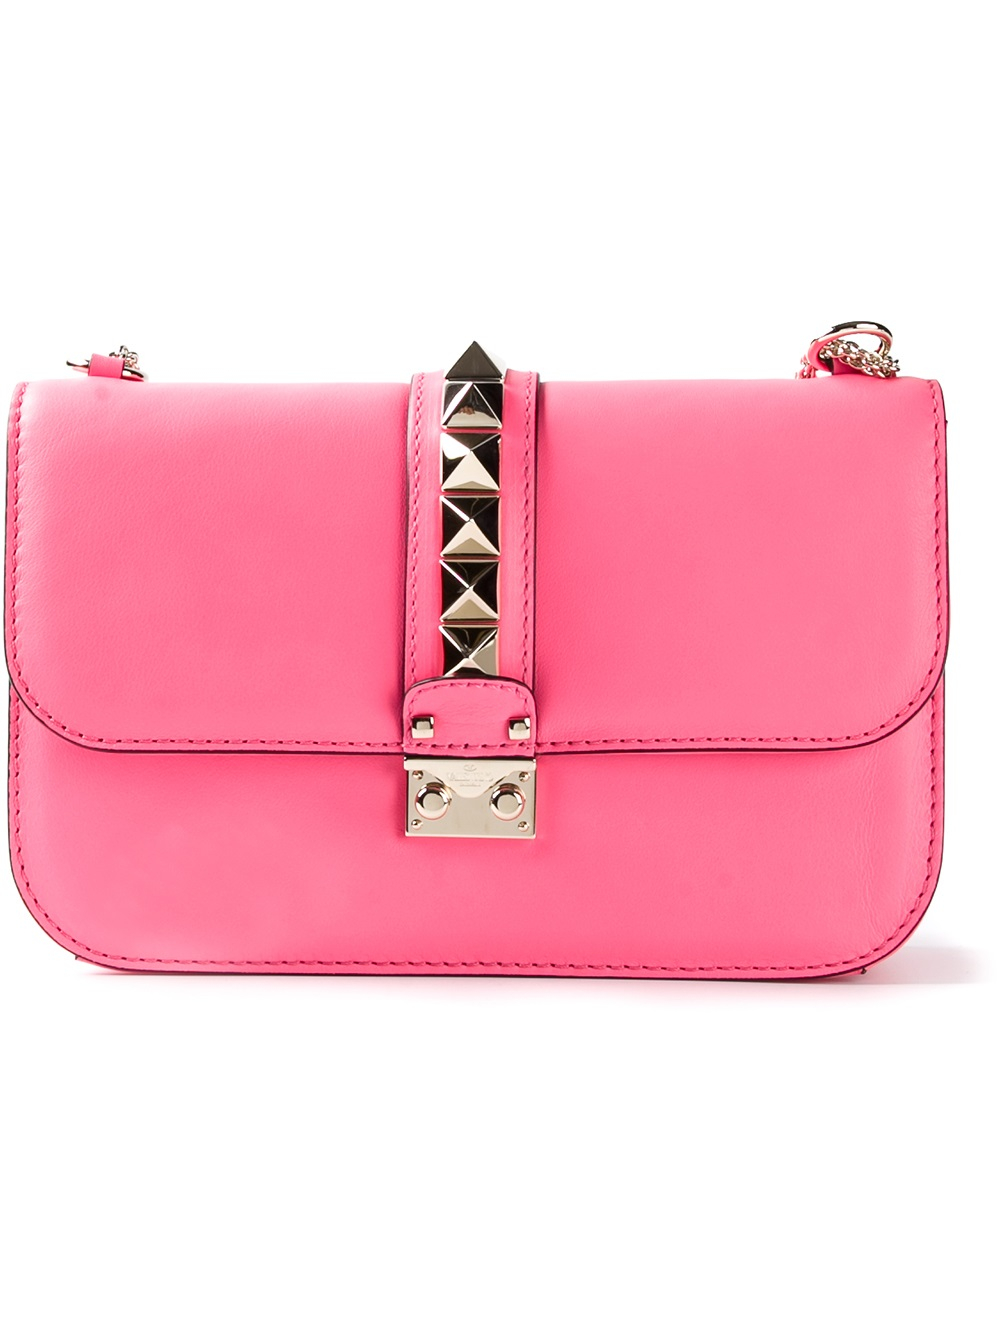 Gallery Previously Sold At Farfetch Women S Valentino Rockstud Bags Givenchy Pandora Pink